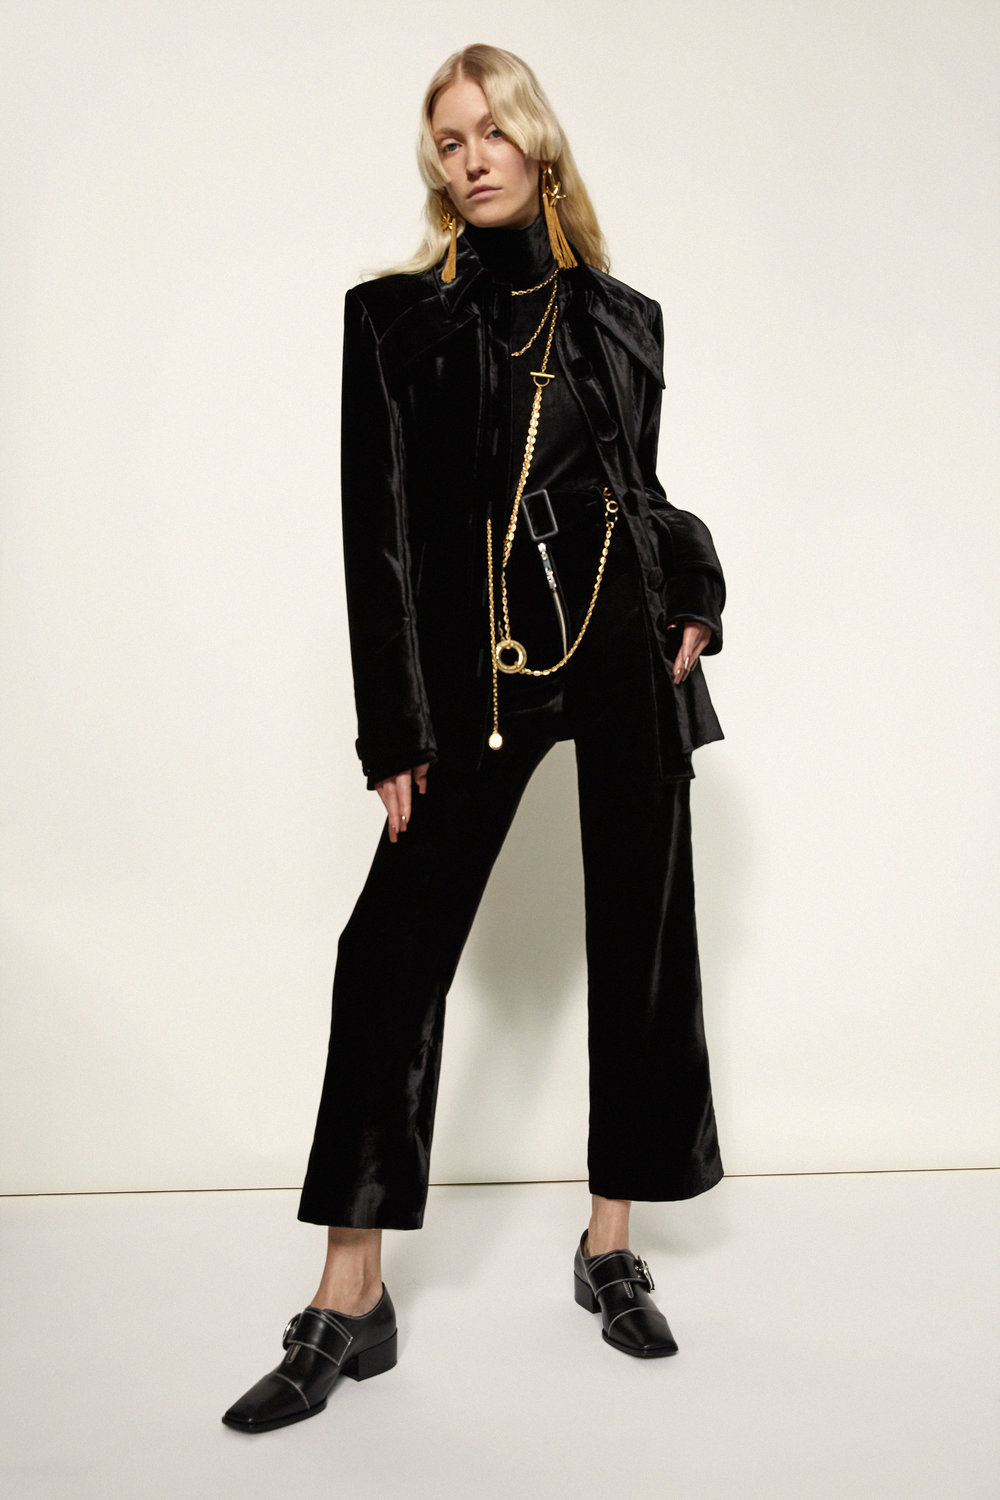 ELLERY_FALL19_PHOTOGRAPHER_KYMELLERY_LOOK18.jpg